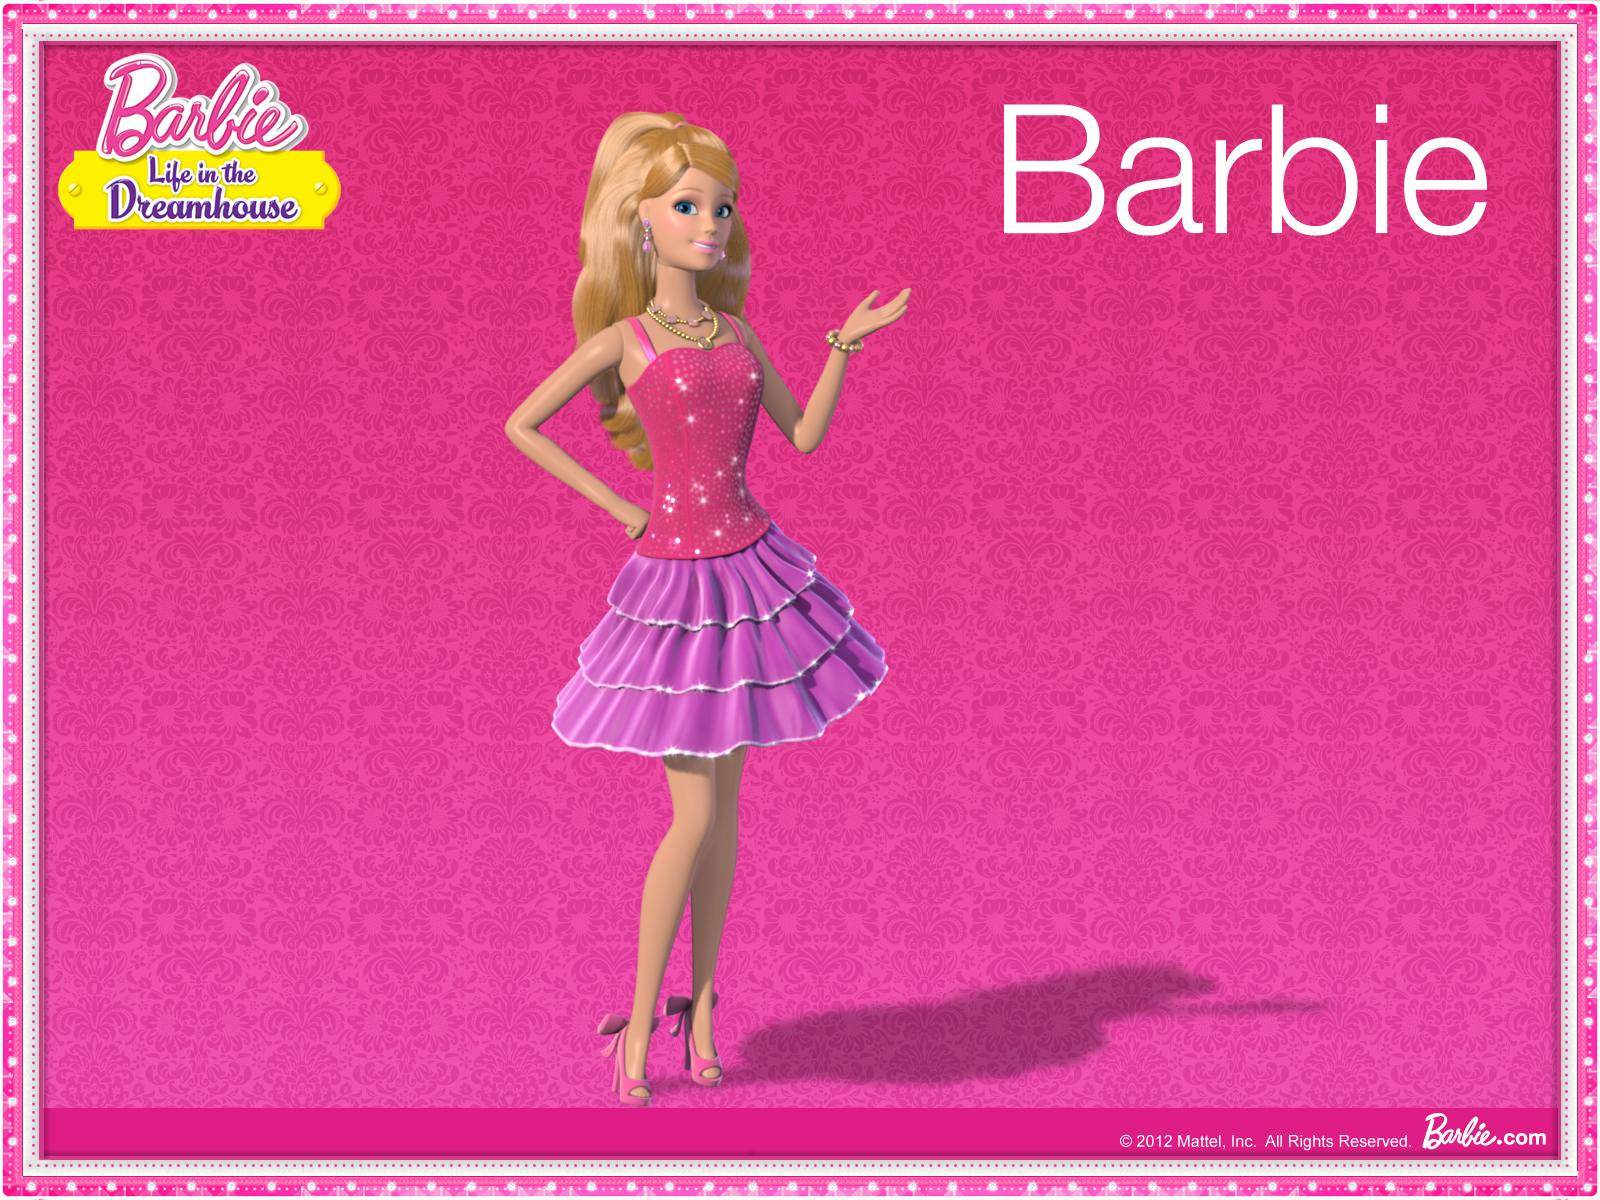 Barbie life in the dreamhouse barbie movies 30807883 1600 1200